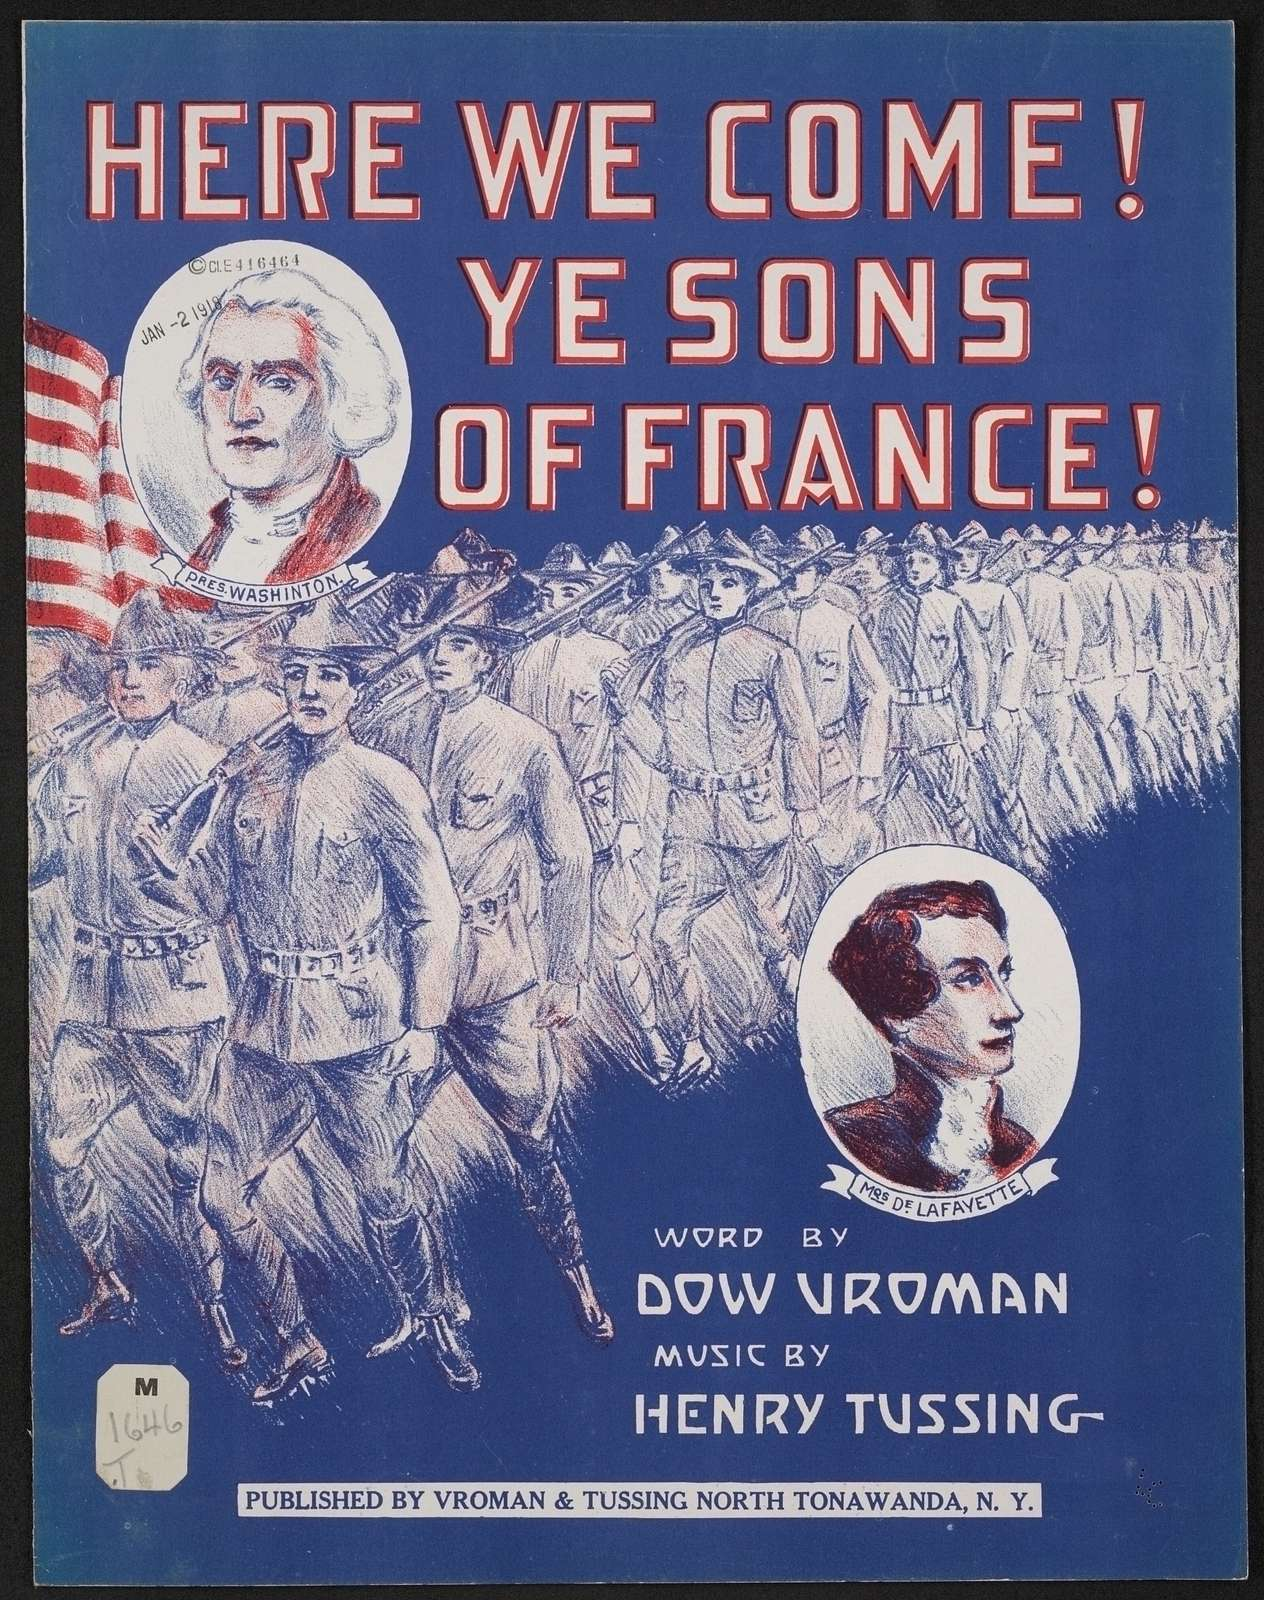 Here we come! ye sons of France